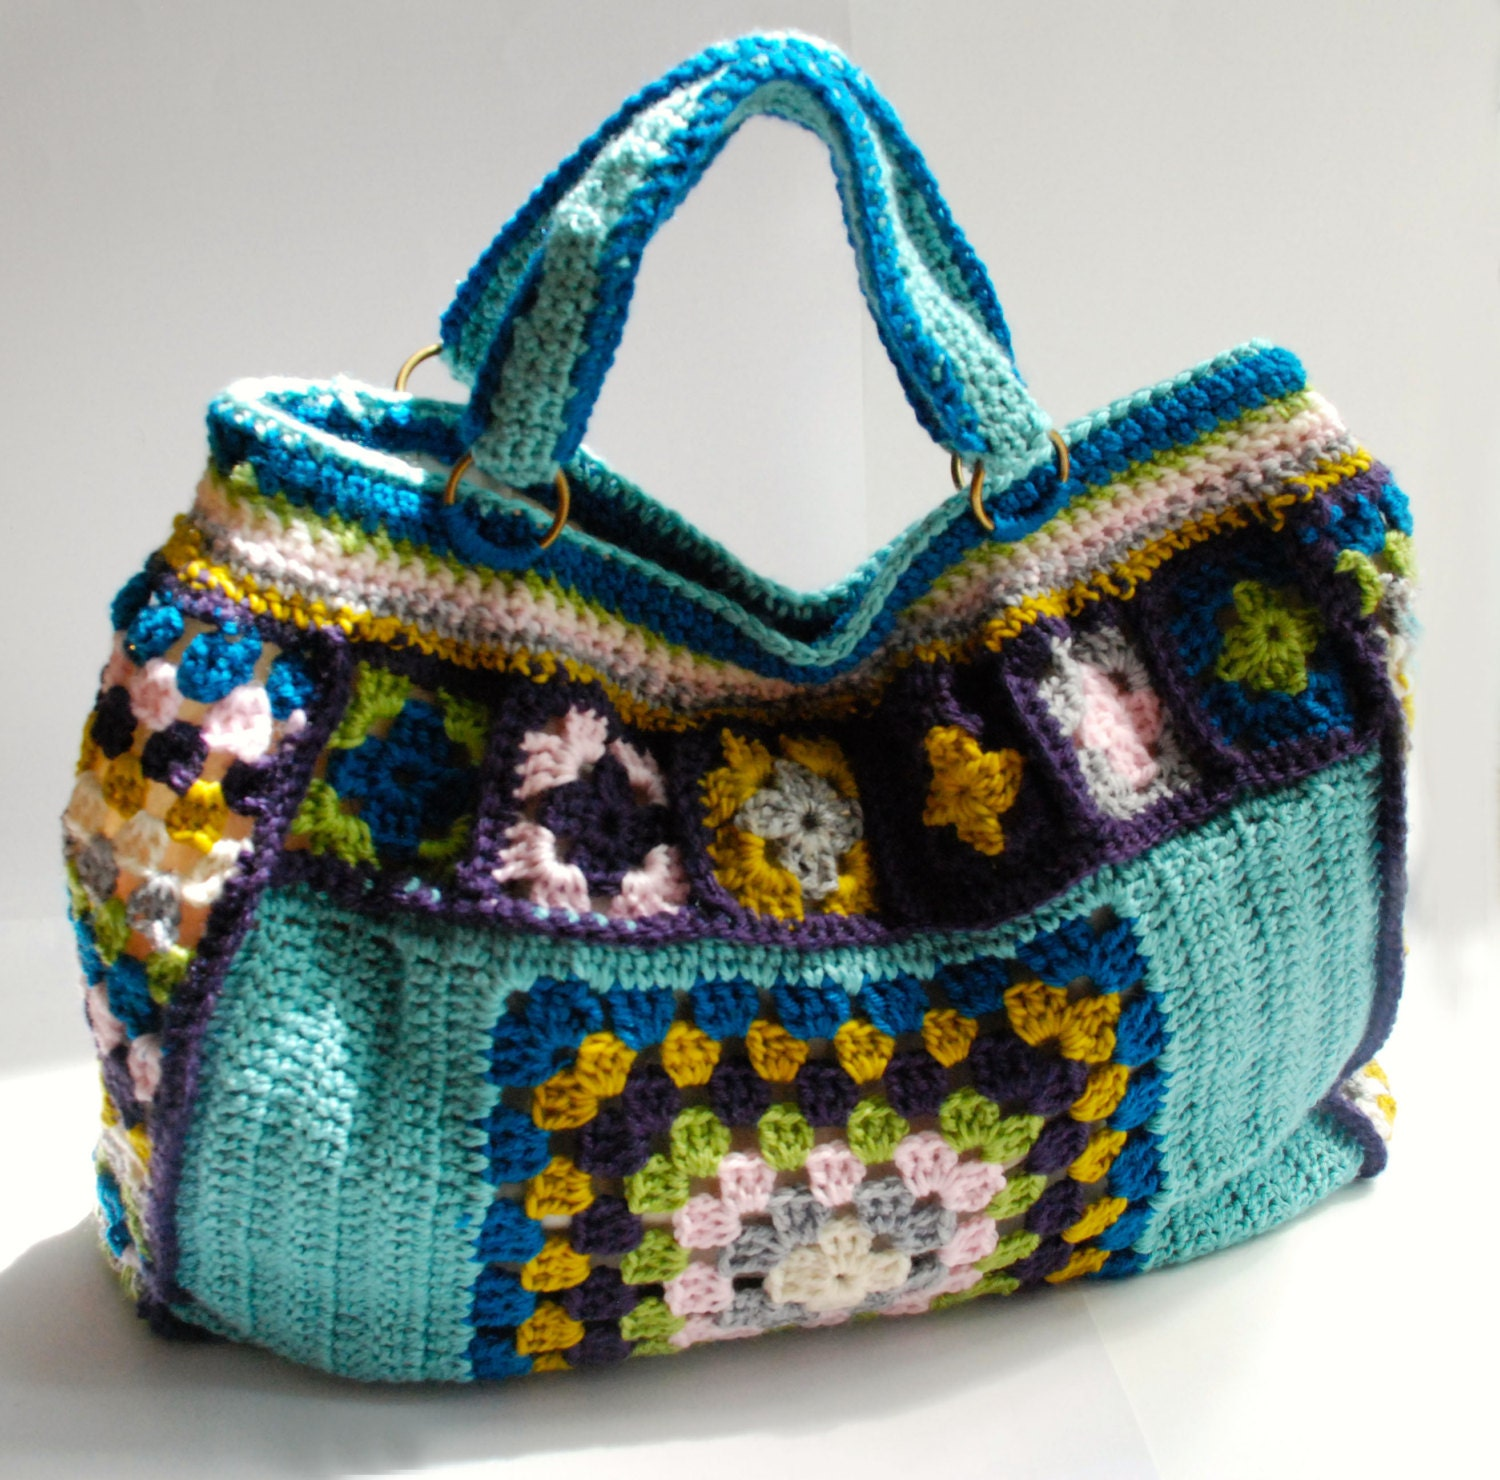 Crochet purse granny square weekend bag pattern by KristisTwist